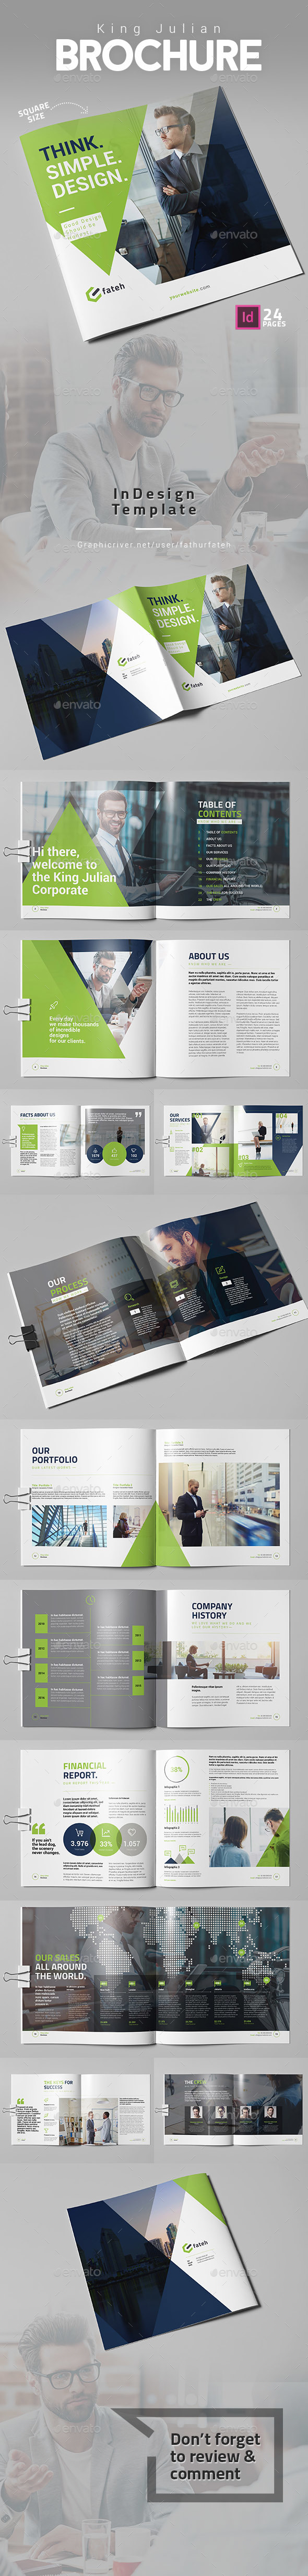 King Julian Brochure - Square - Corporate Brochures